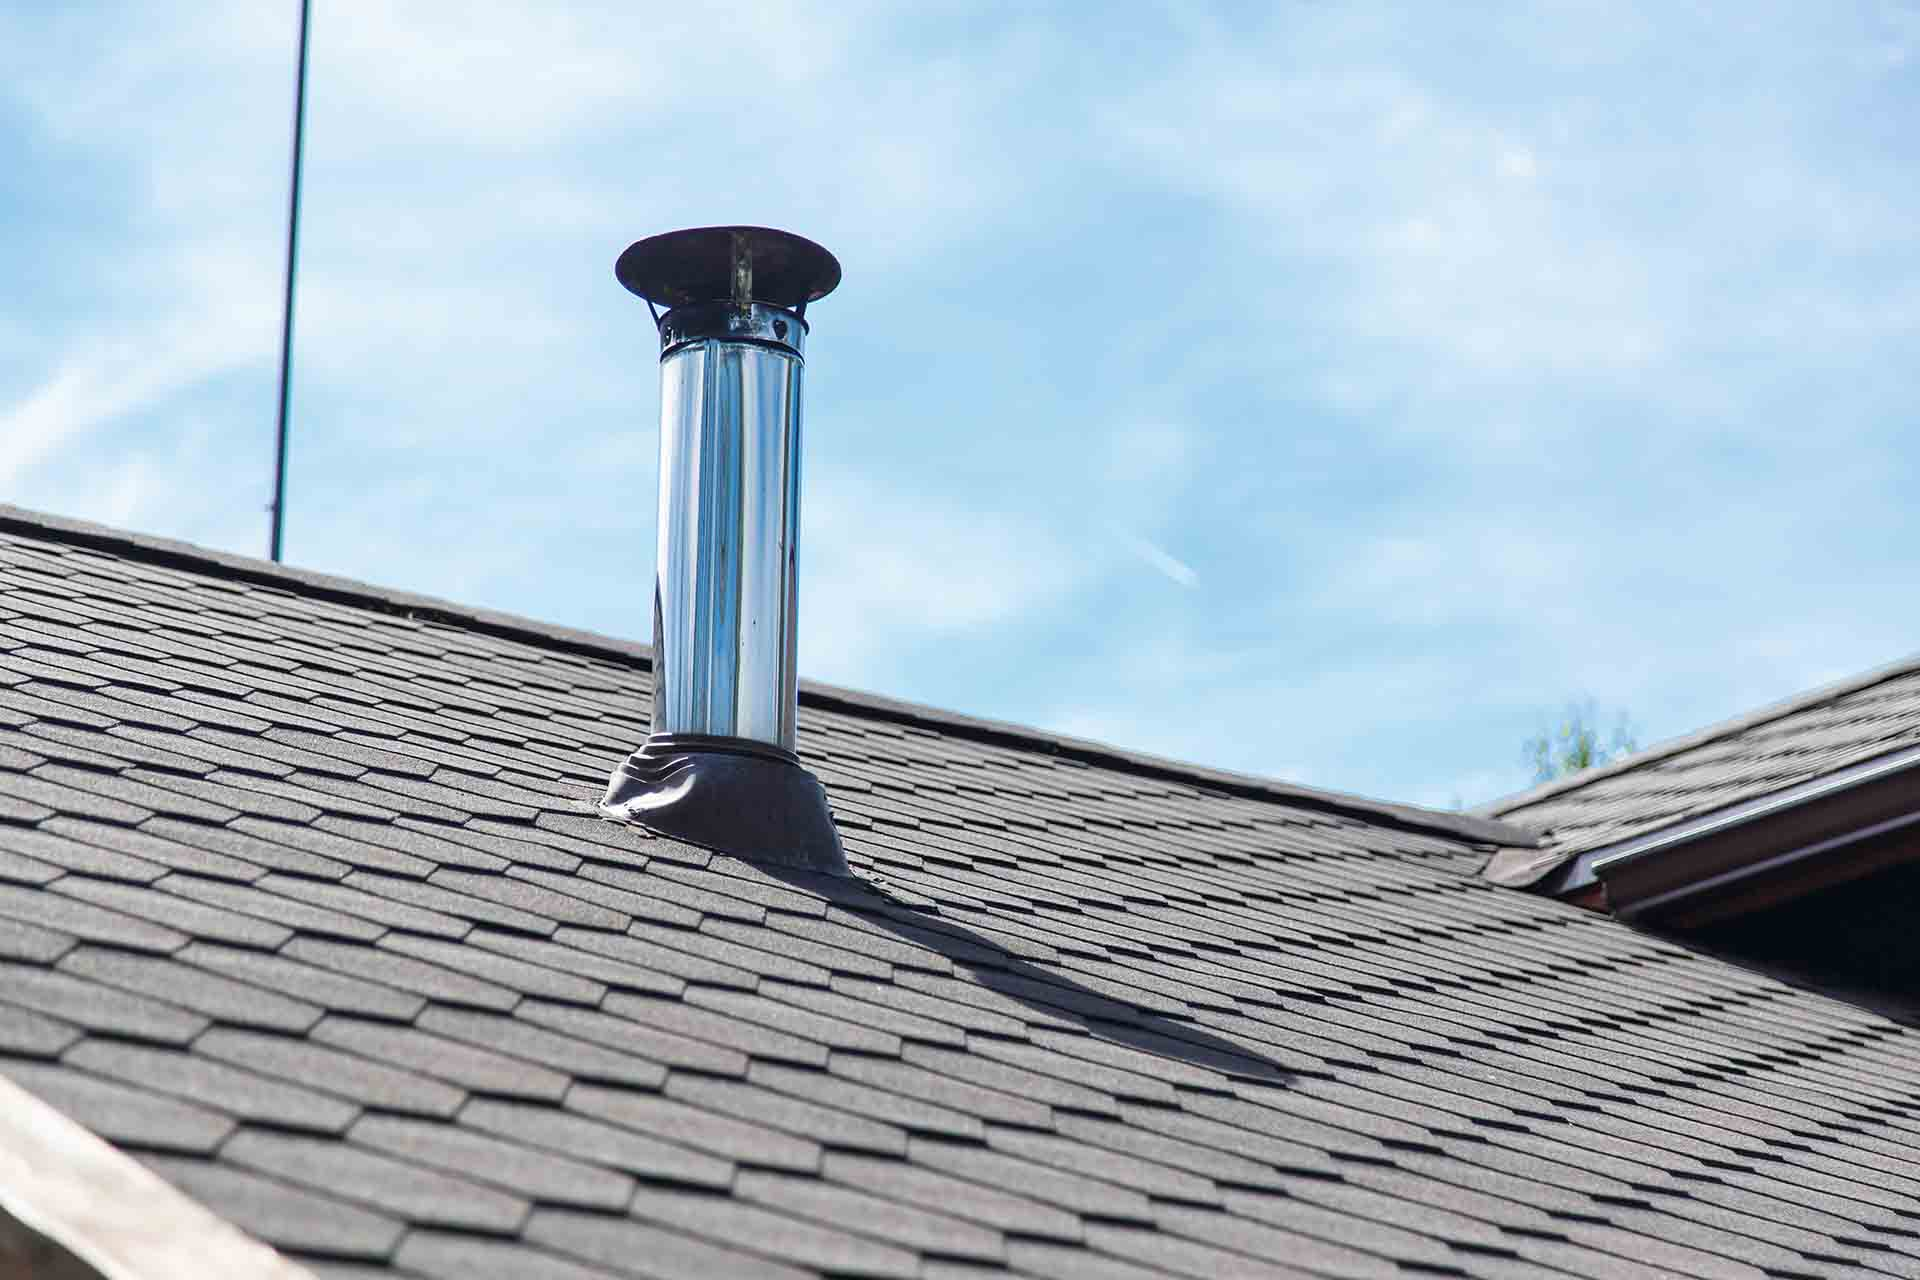 How do I know if a roofing company is legit?